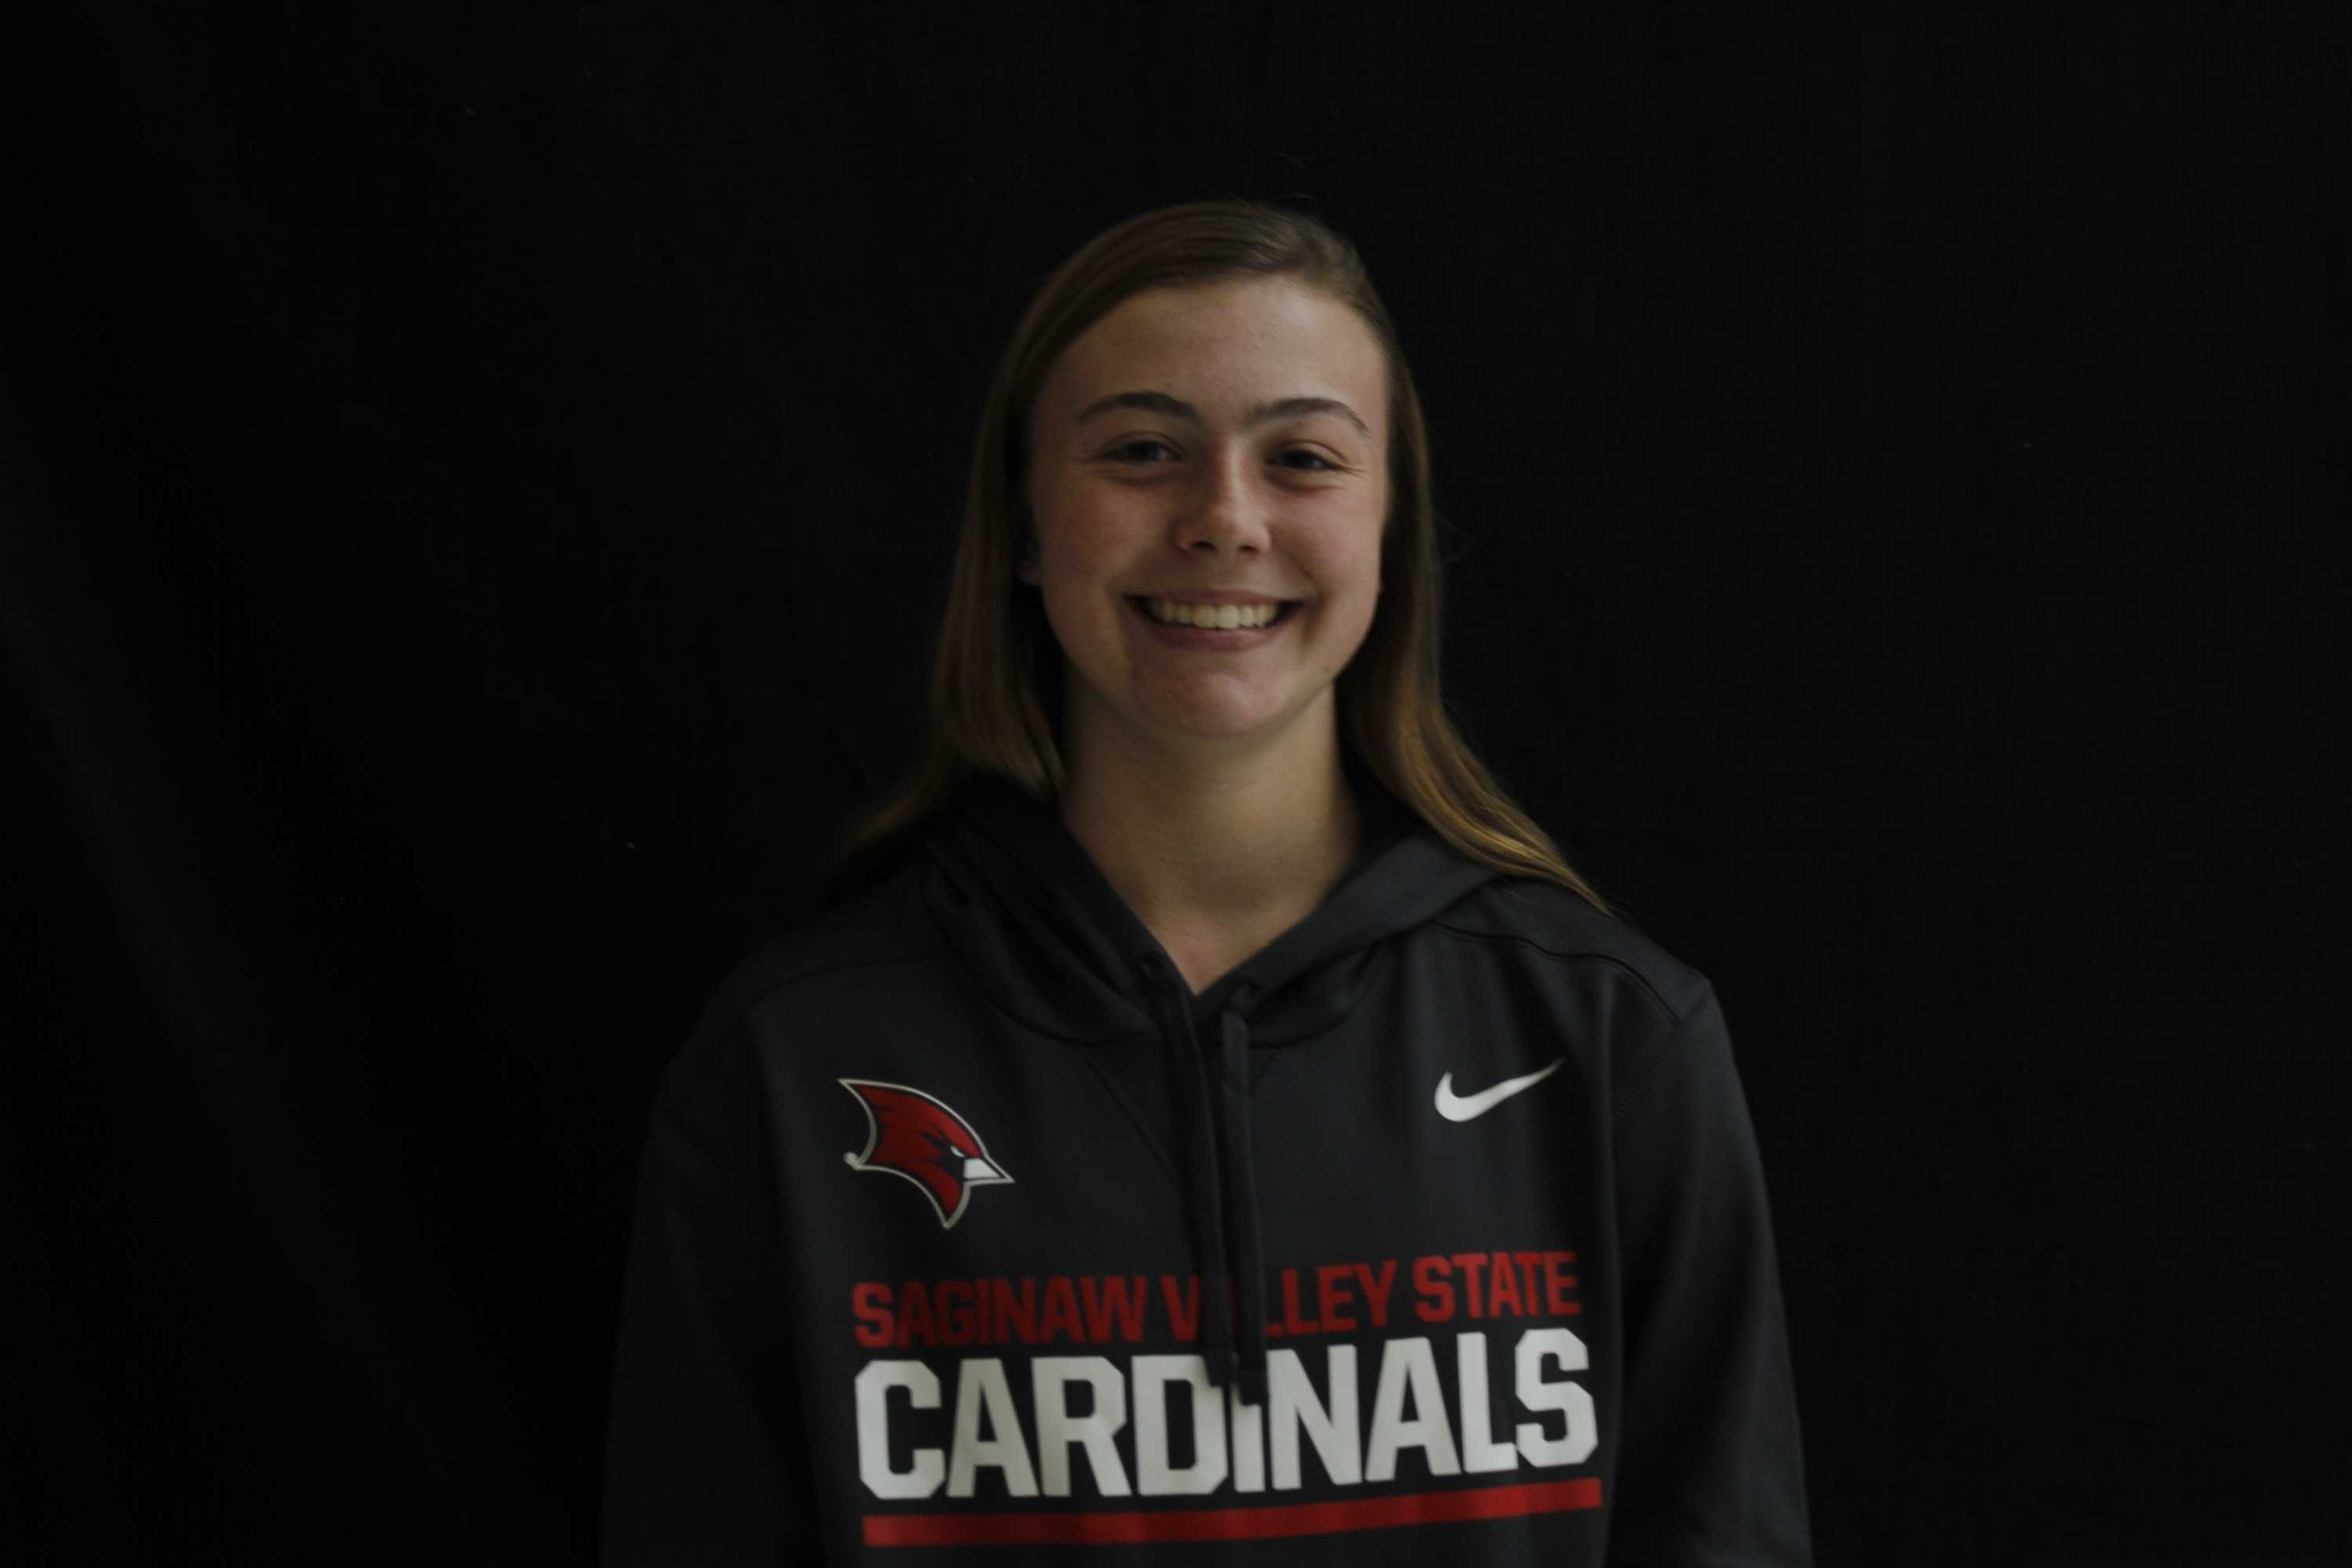 Darcy Barkauskas verbally committed to Saginaw State University. She plans to continue her softball career there